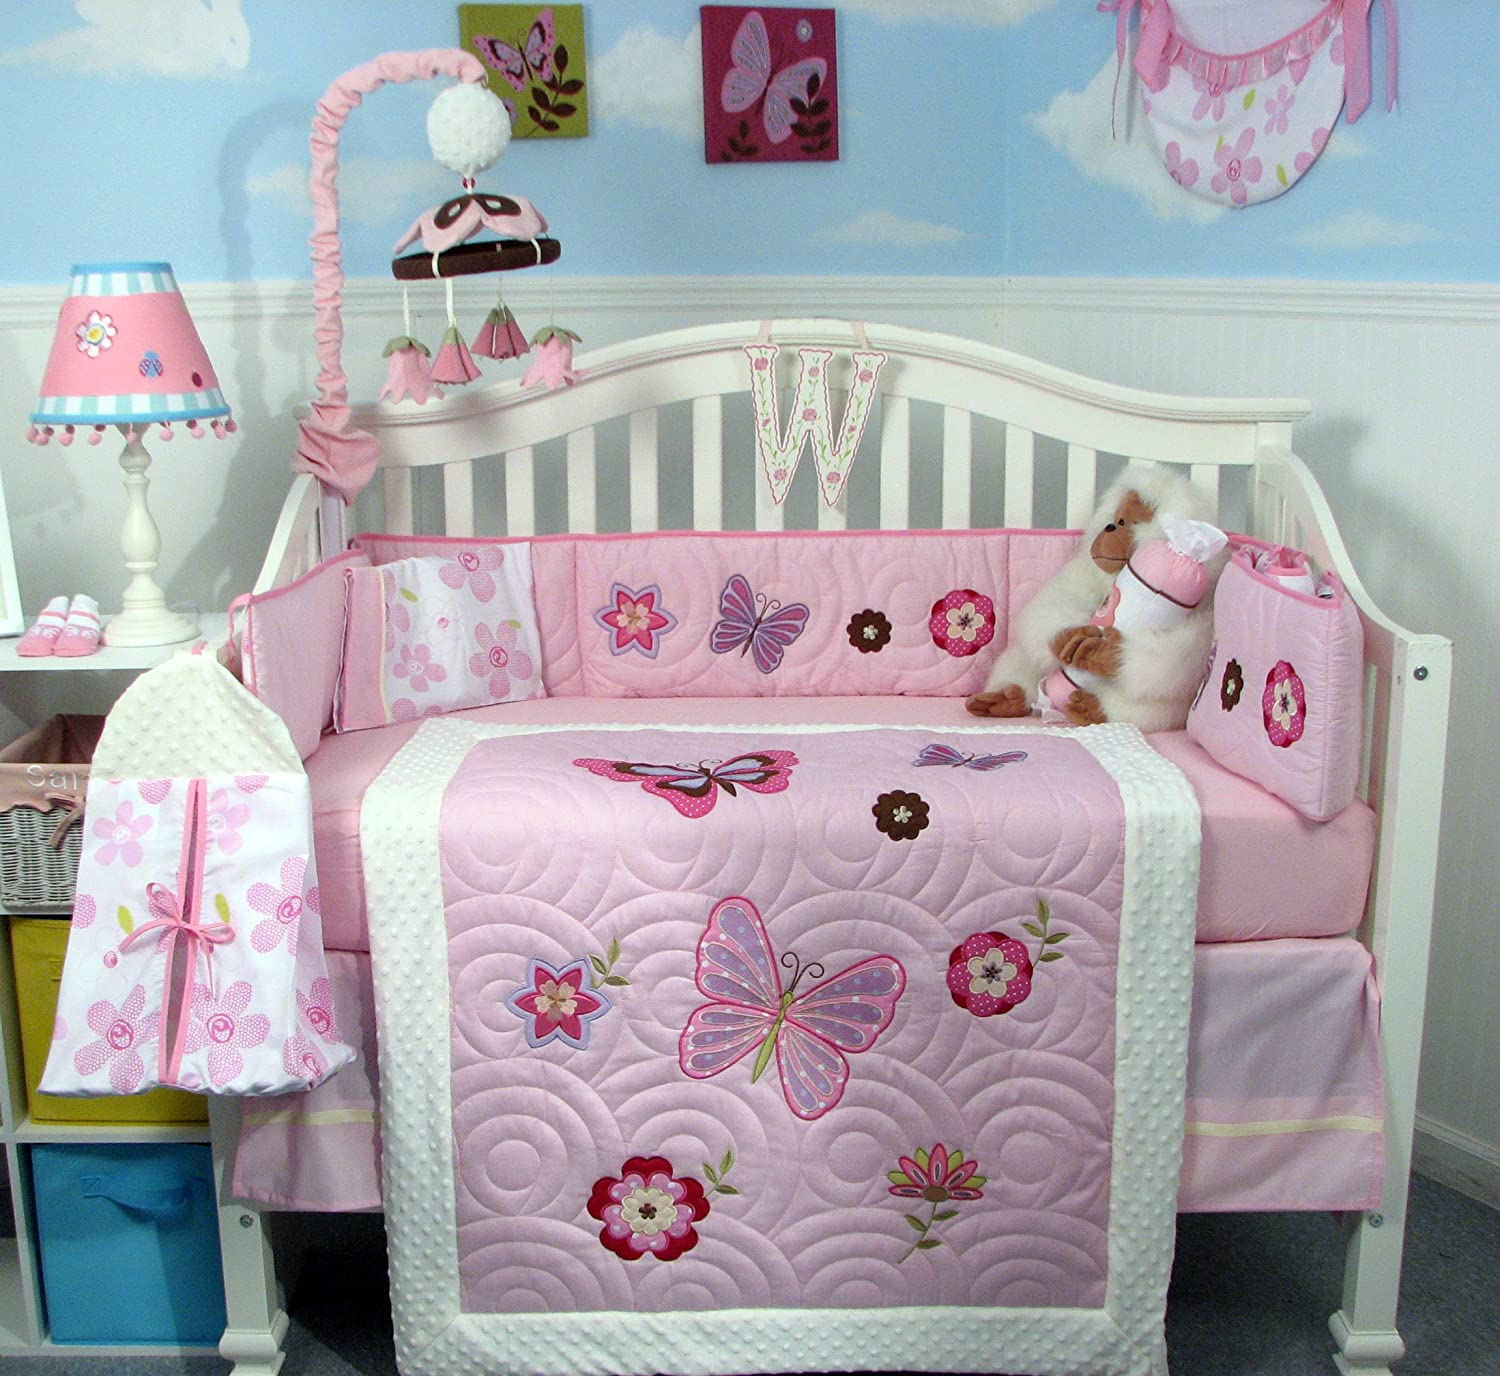 Soho Designs Butterflies Breeze Crib Bedding